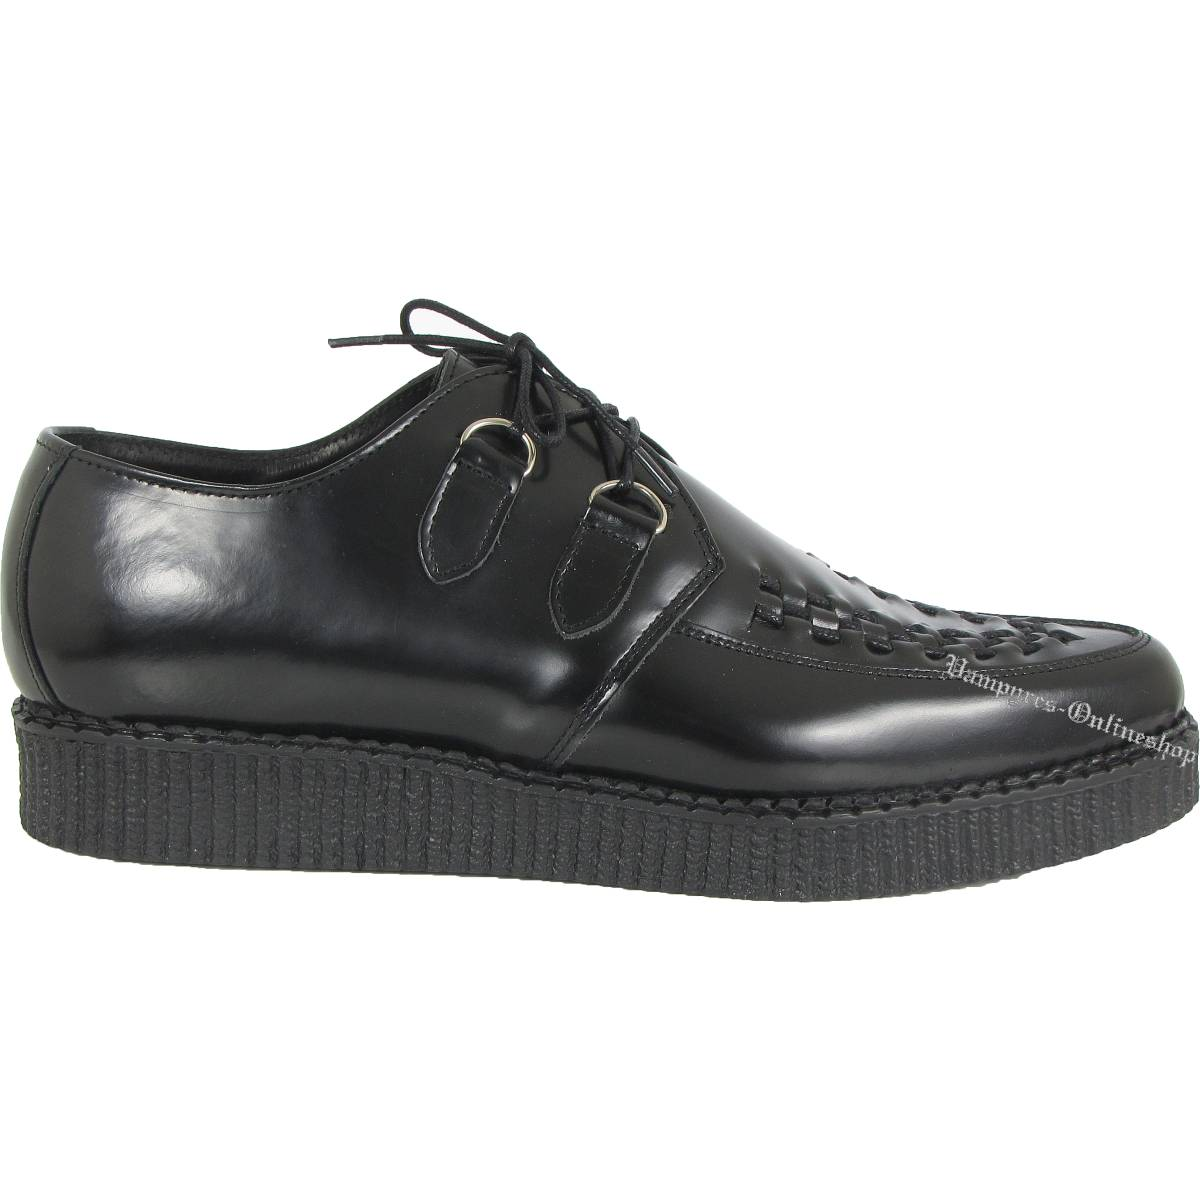 creepers A metal frame with a spike or spikes, attached to a shoe or boot to prevent slipping, especially on ice. 7. Slang A person who is a creep, especially one who is considered to be unsettling.